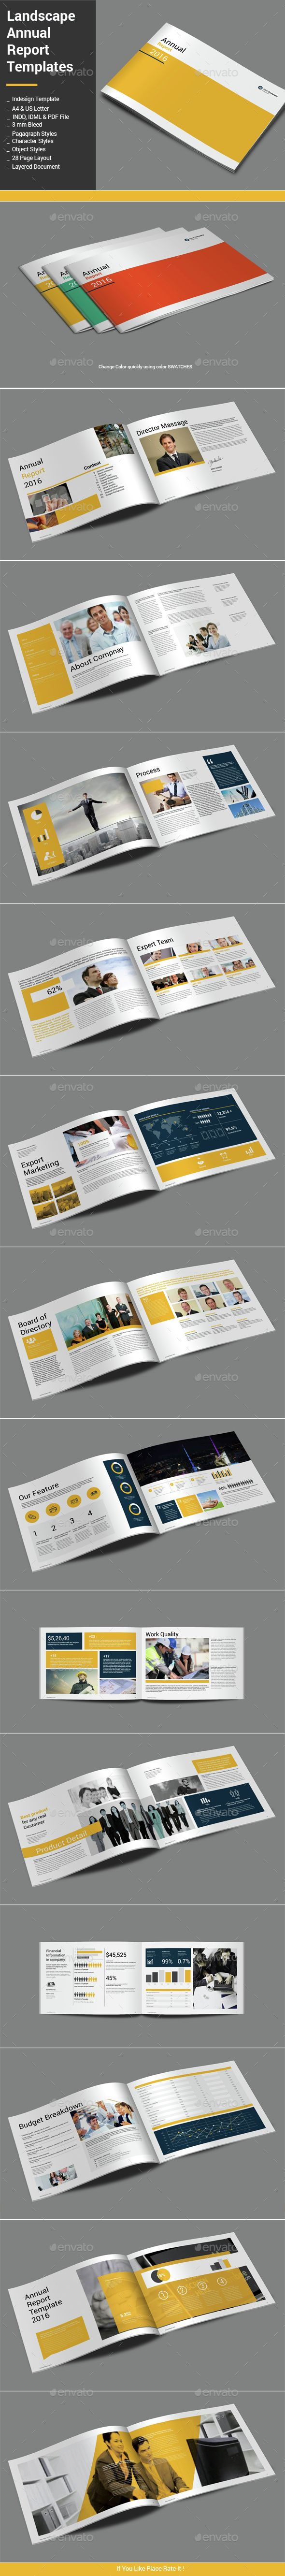 Landscape Annual Report Template | Annual reports, Template and ...